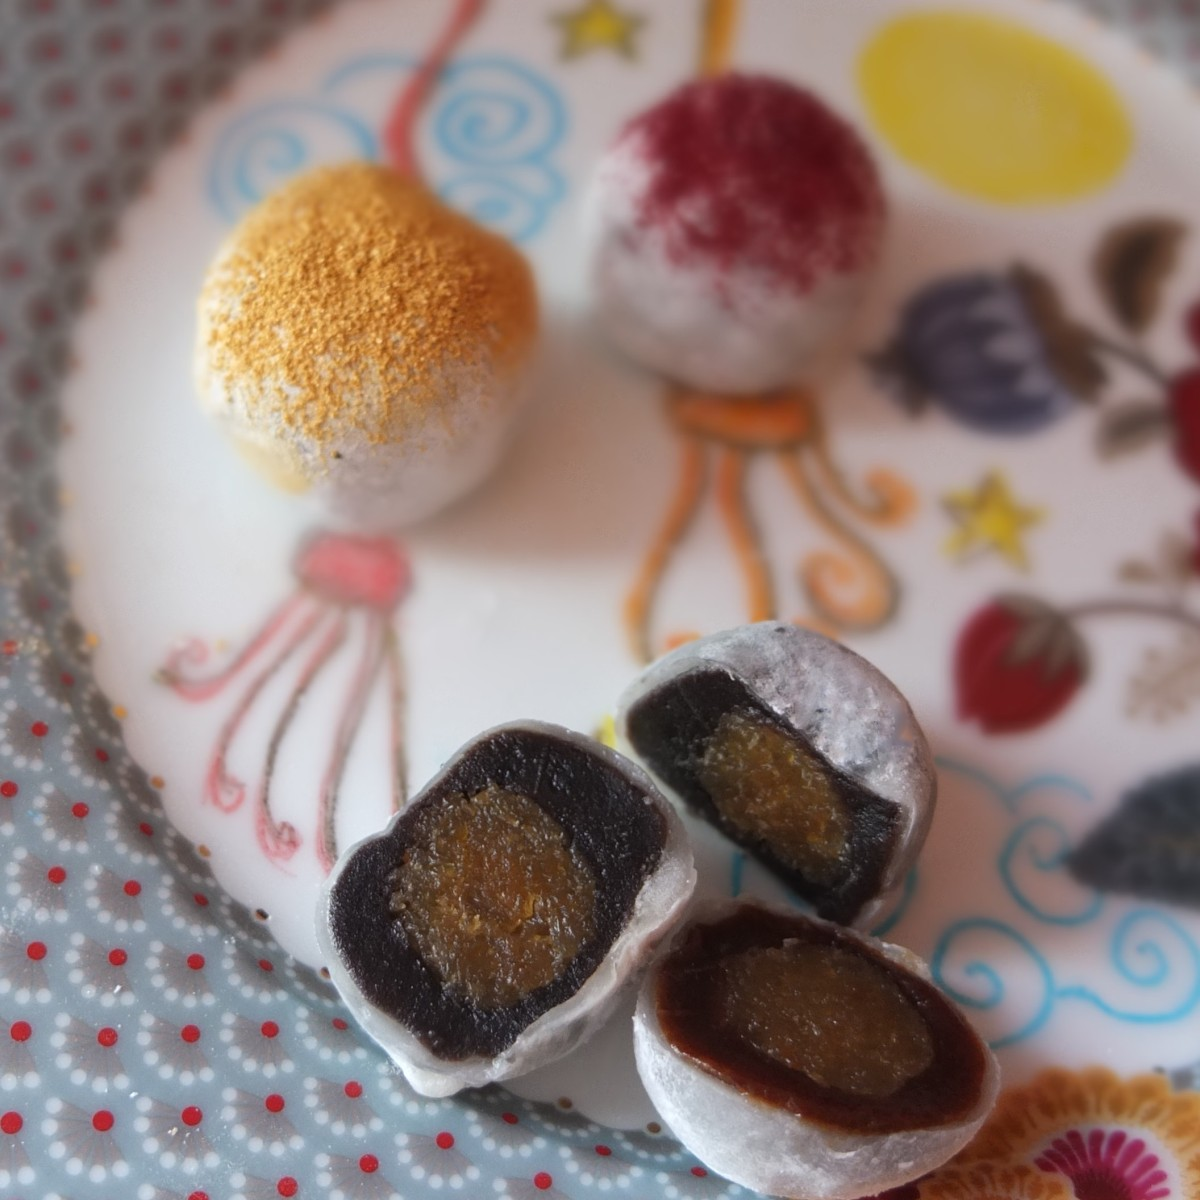 Red bean and pineapple mochi rice cakes recipe!  With black sesame, strawberry or plain versions!  And Paris cake tour no.1!